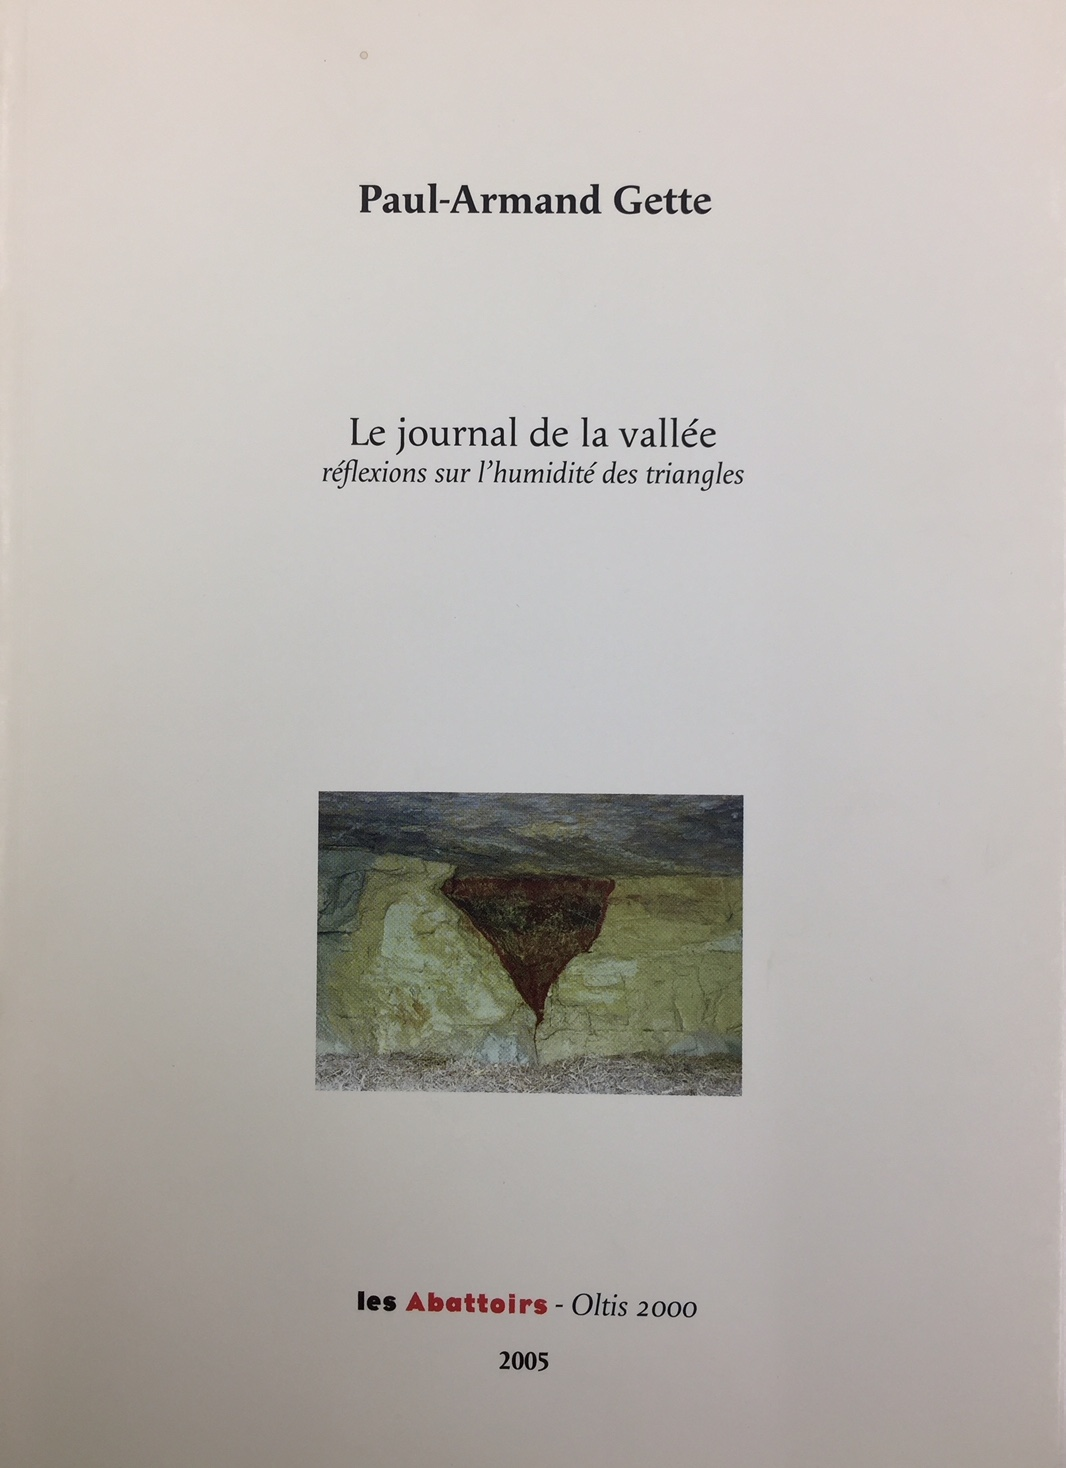 Le journal de la vallée